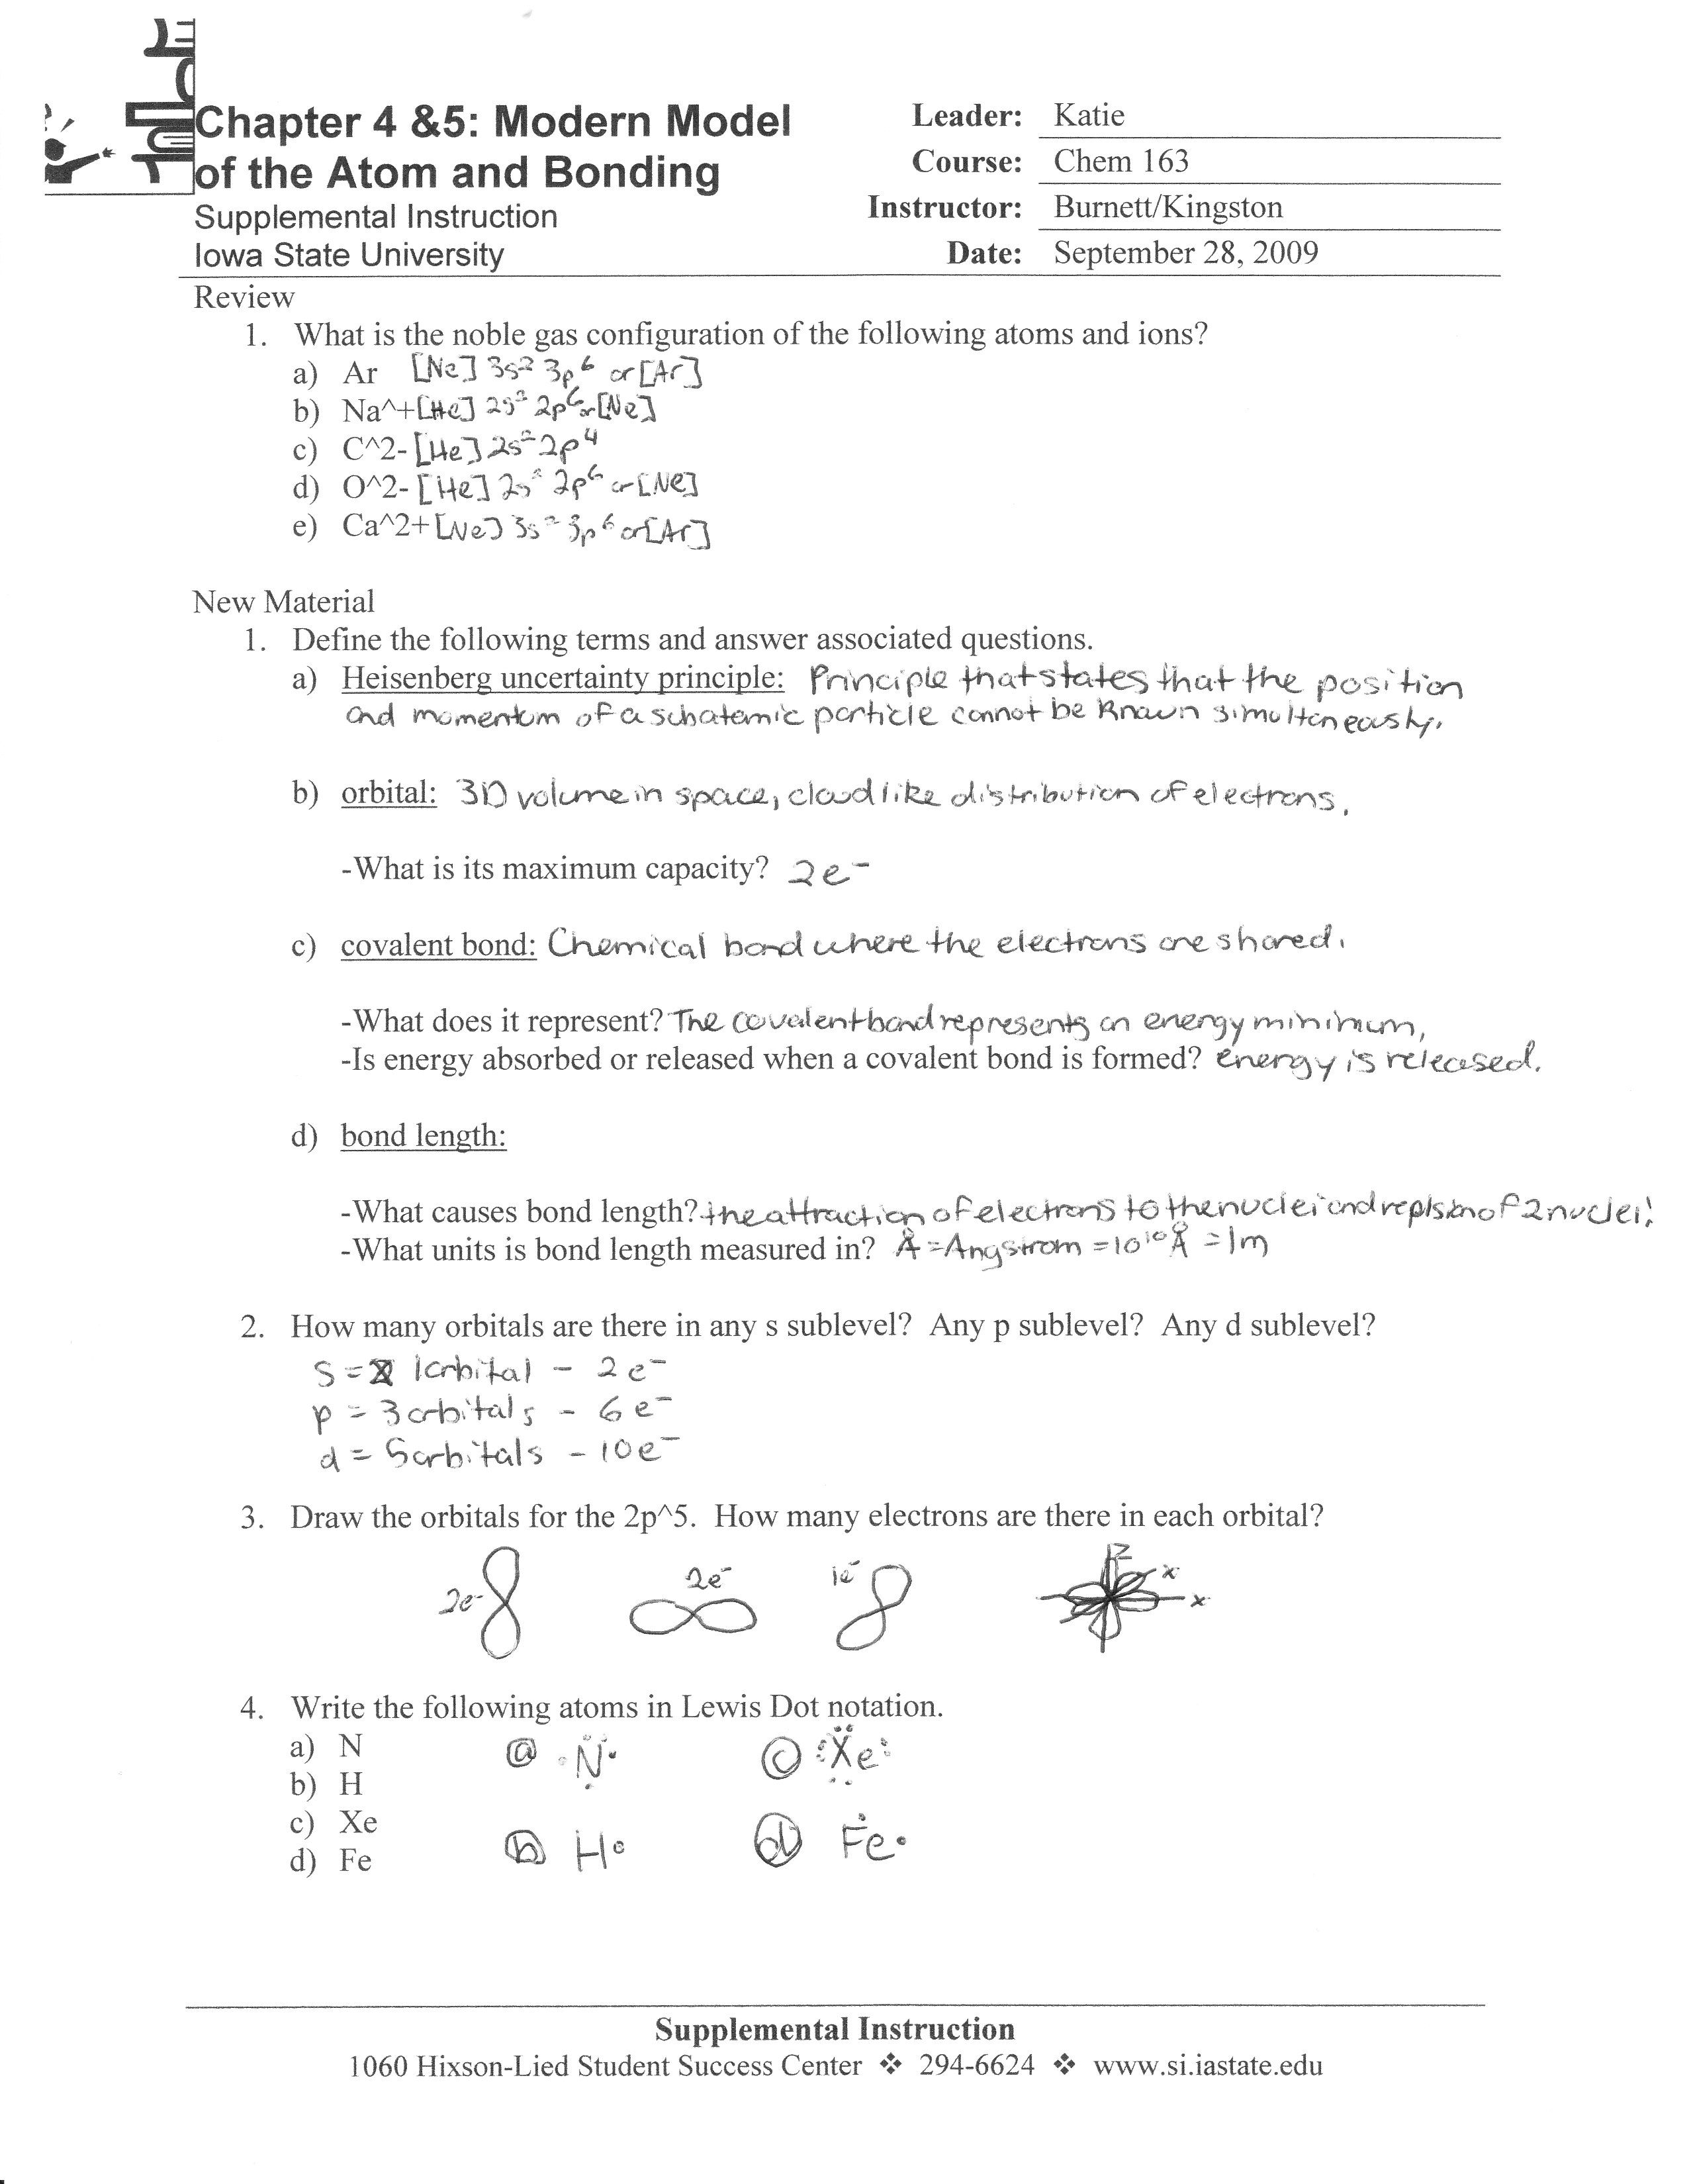 Chem 163 Supplemental Instruction